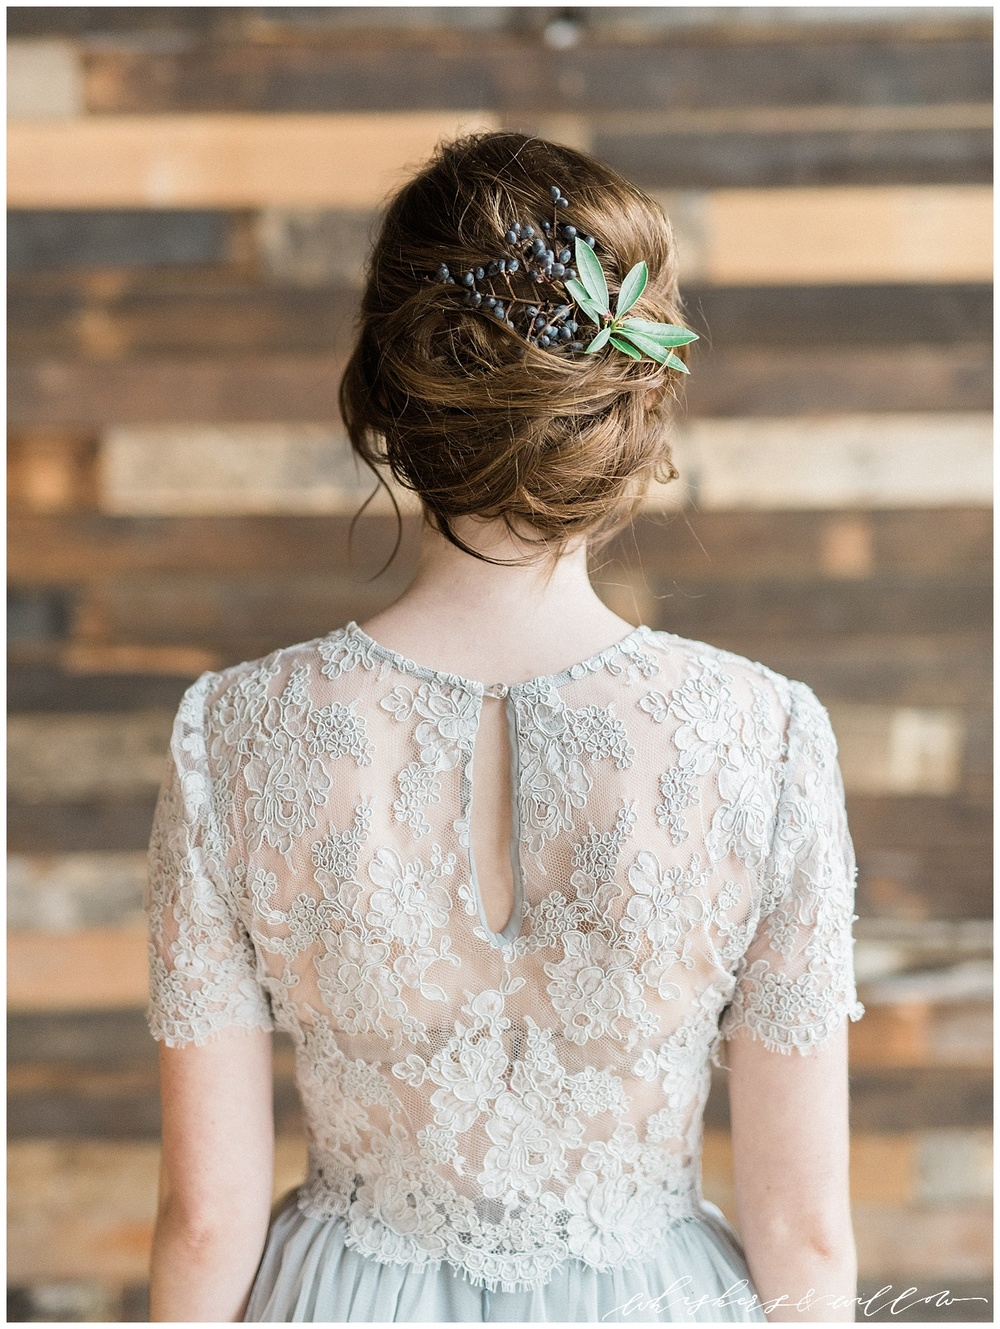 Industrial organic bridal inspiration at Metropolist | Hair by Yessie Libby | Grey Lace and Tulle gown by Alexandra Grecco | Whiskers and Willow Photography